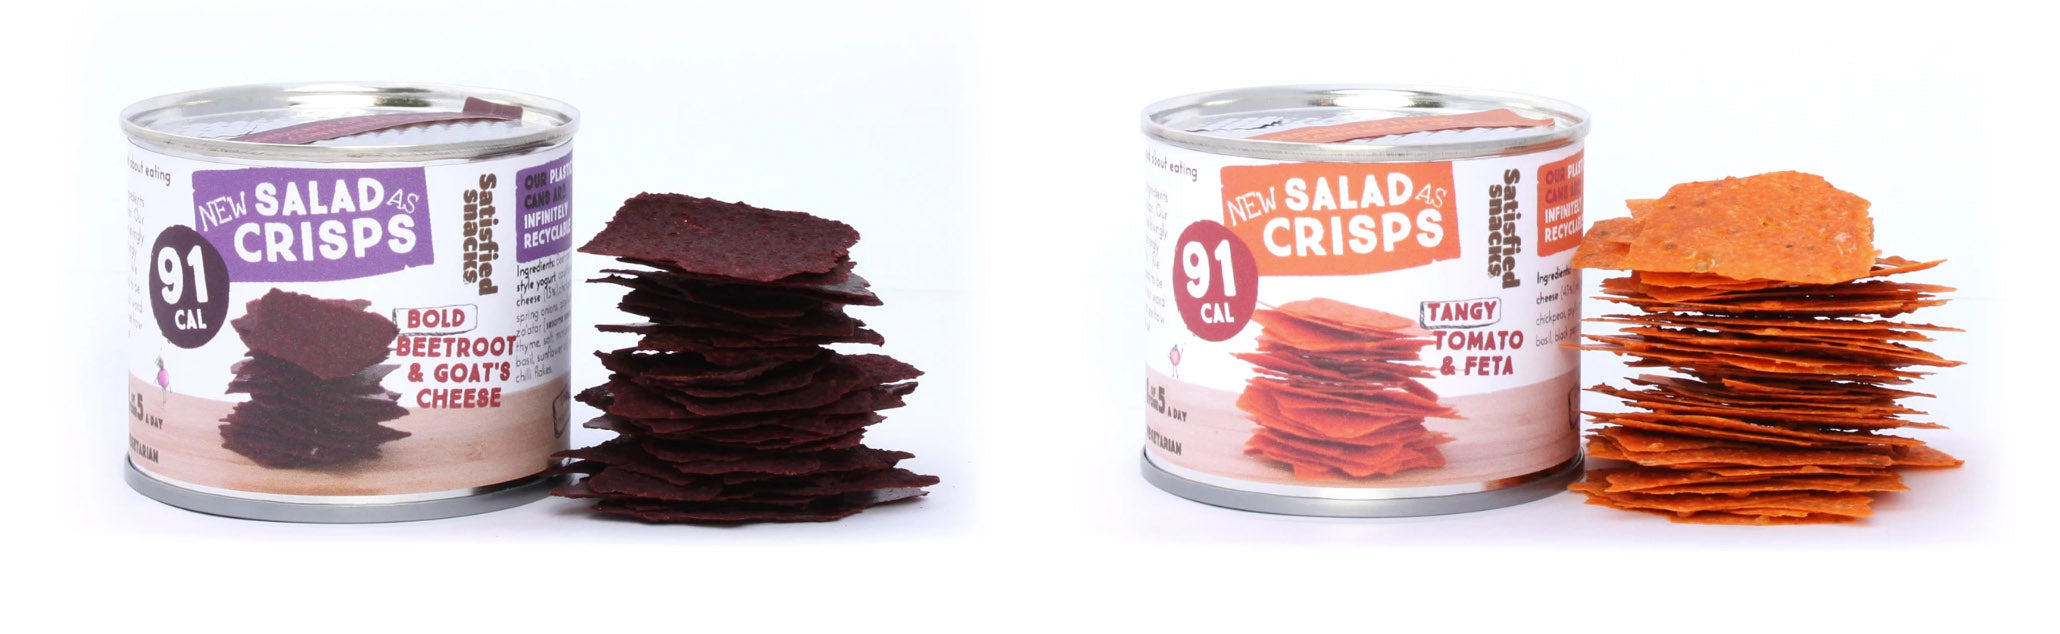 beetroot, goat's cheese, tomato and feta salad crisps